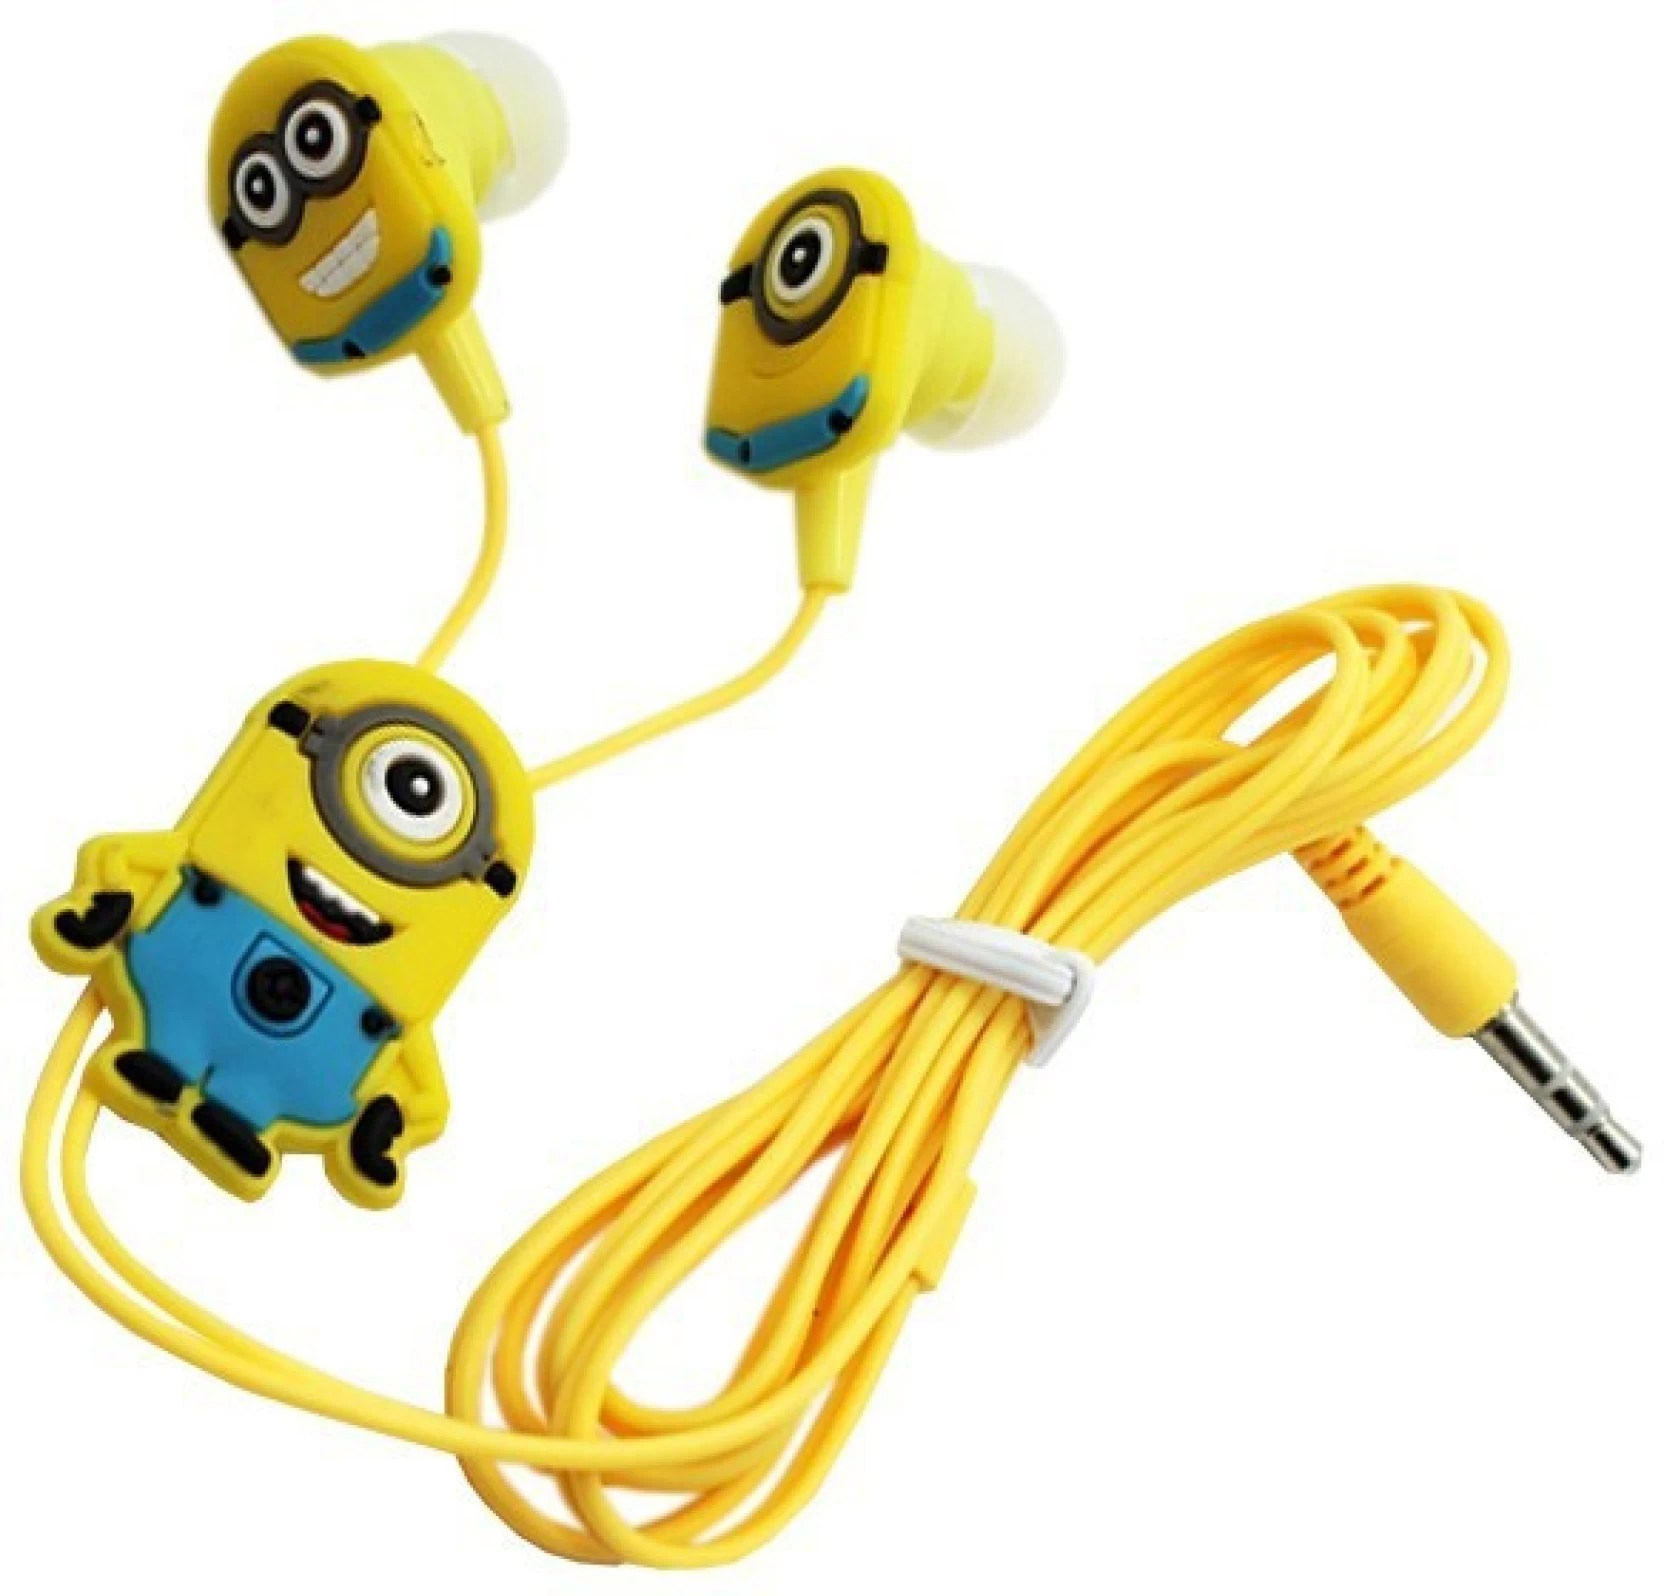 small resolution of justchhapo minions cartoon in ear wired 3 5 mm earphone for mp3 mp4 mobile phone with earplug cover wired headset with mic yellow in the ear